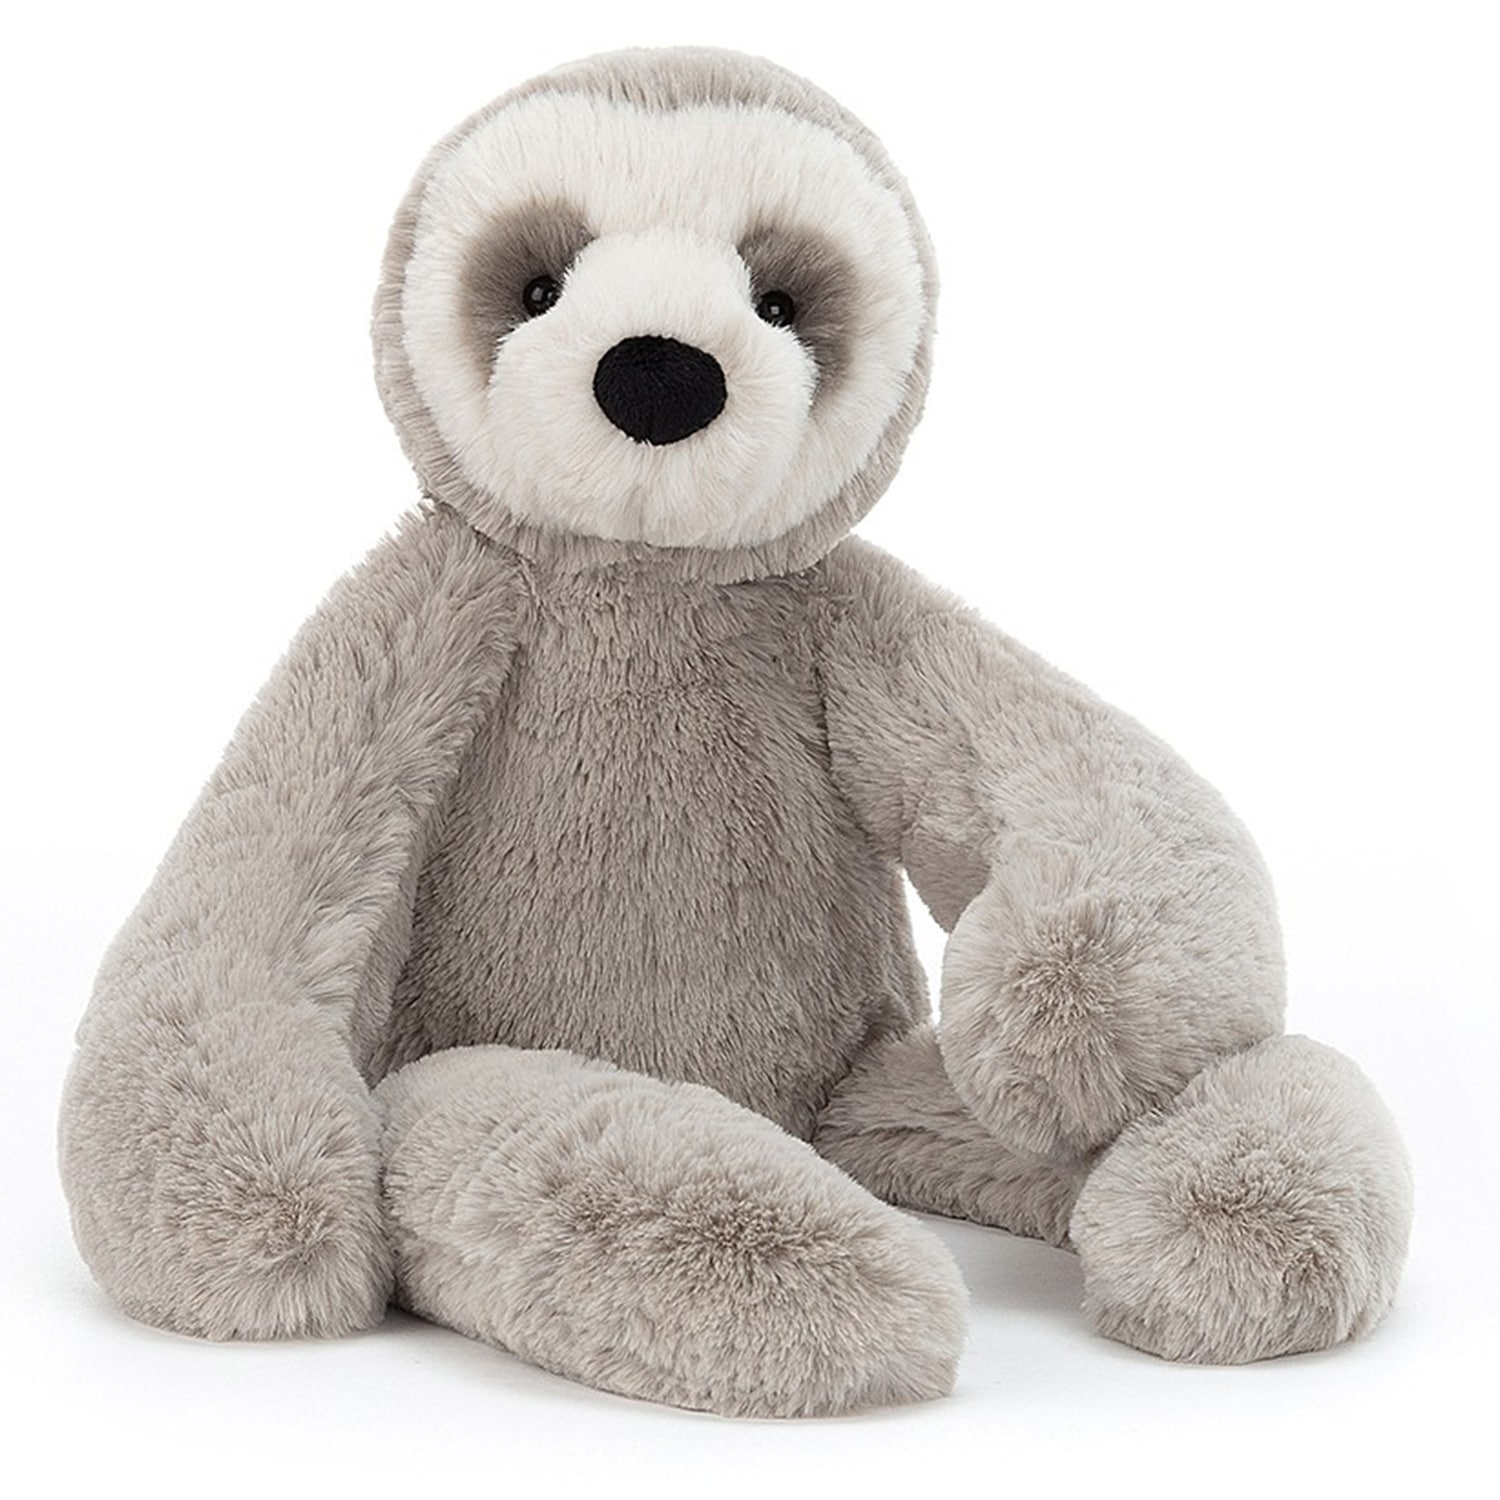 Bailey Sloth Jellycat Teddy Mary Shortle